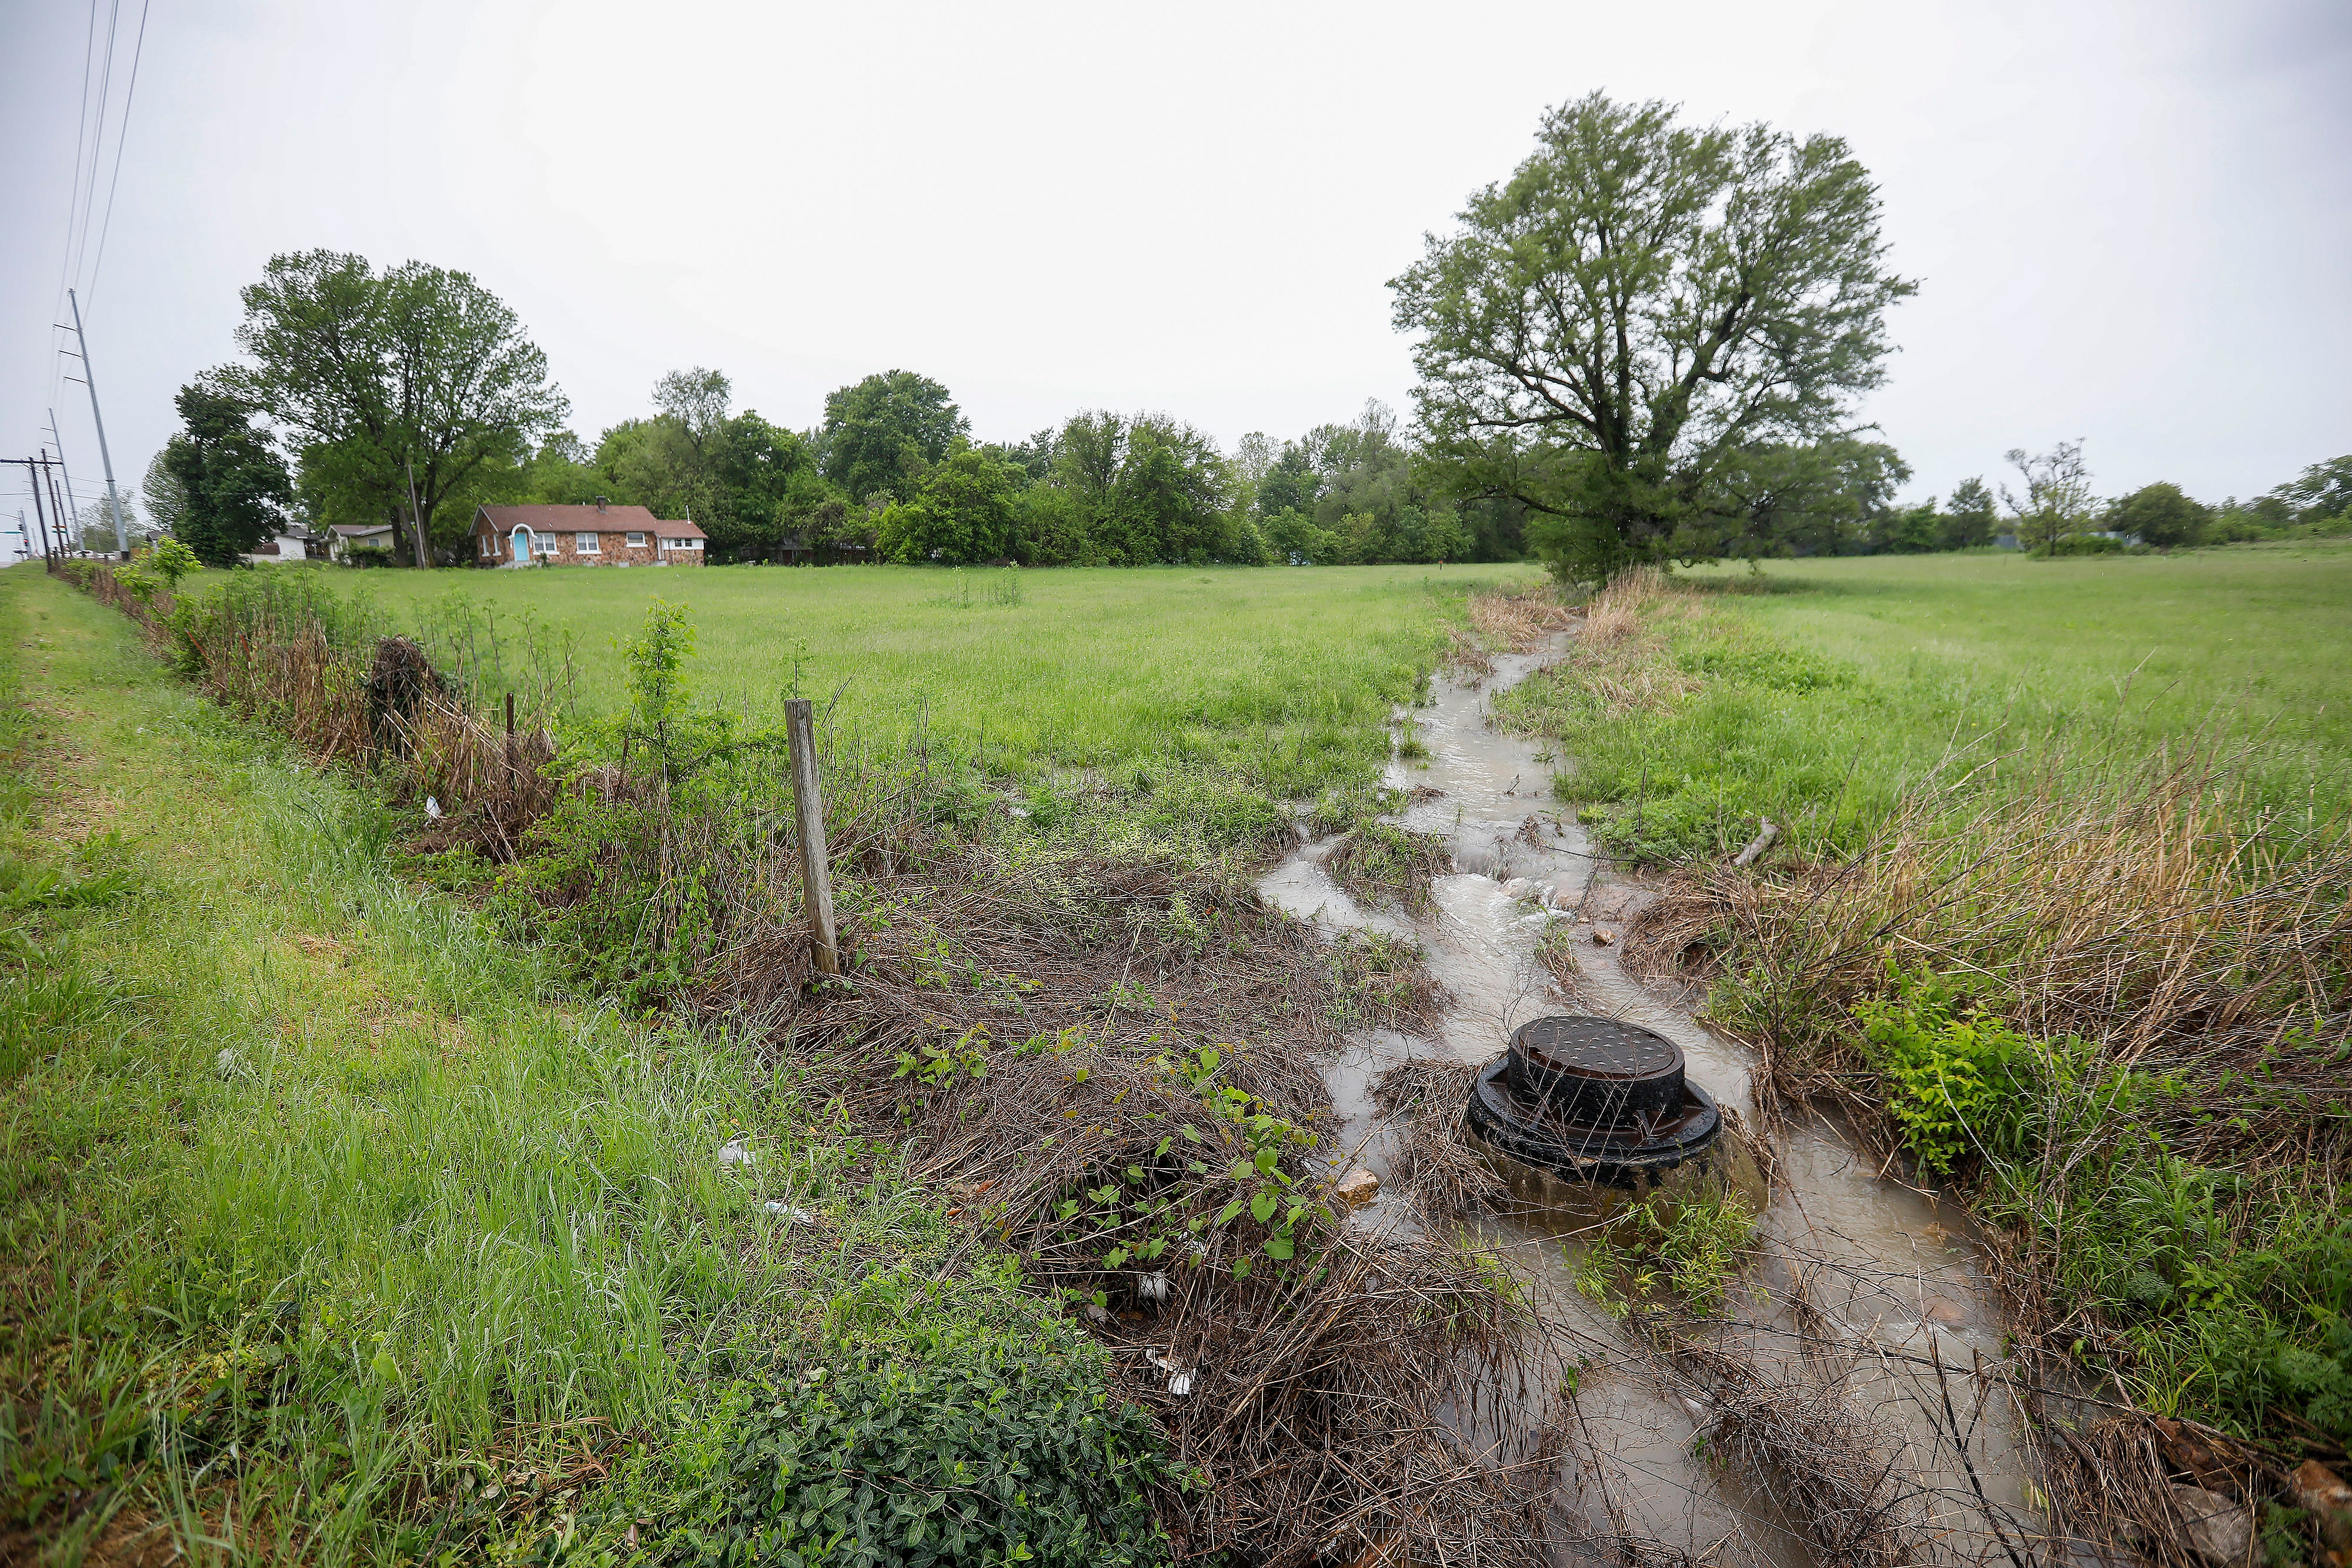 Stormwater flows through the center of the 5 acre lot at 3303 W. Division St., on Wednesday, May 8, 2019. This plot of land may house Eden Village II, a community of tiny houses for the chronically homeless.